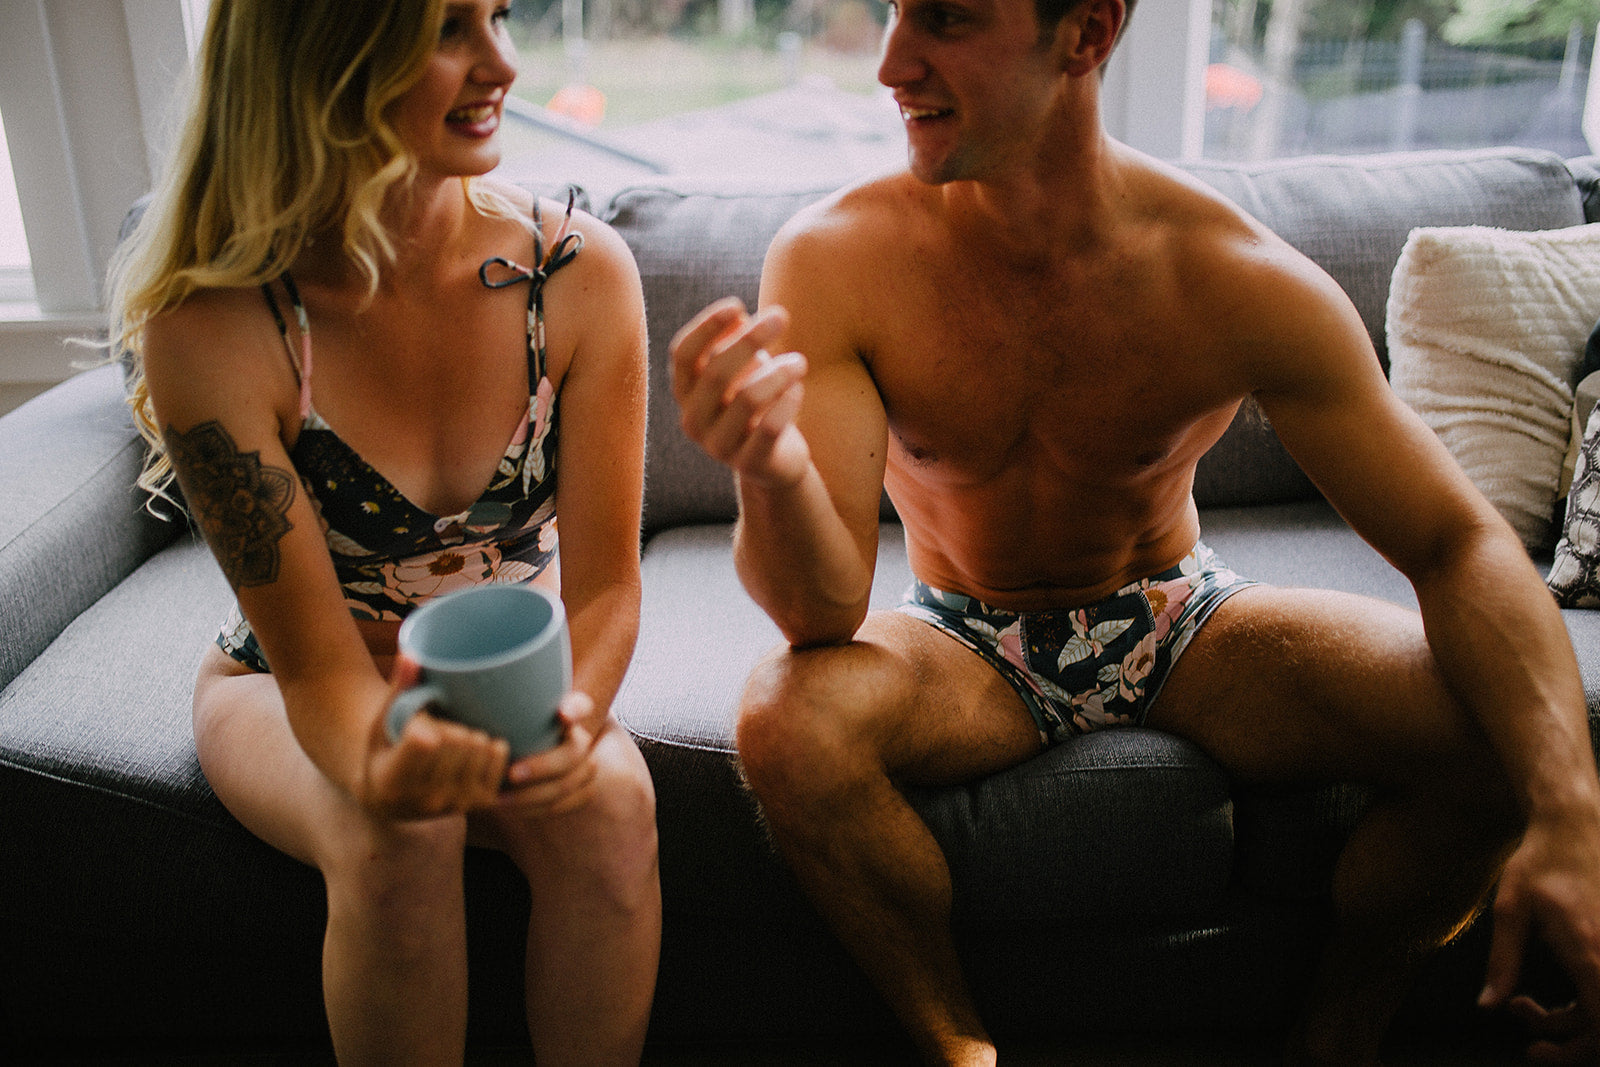 Twilight Floral Couples set underwear | EmMeMa - Buy cute handmade his and her underwear